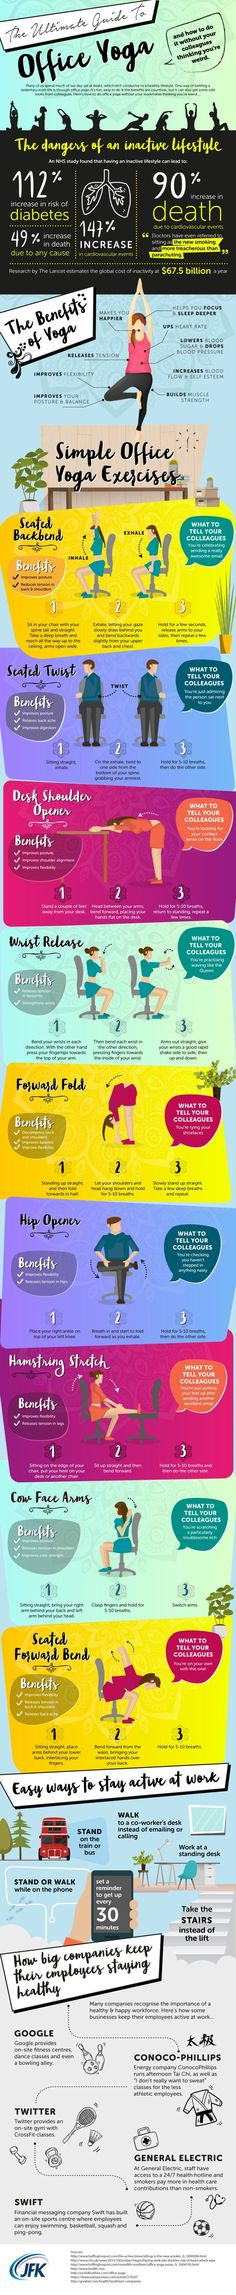 The ultimate guide to Office Yoga!